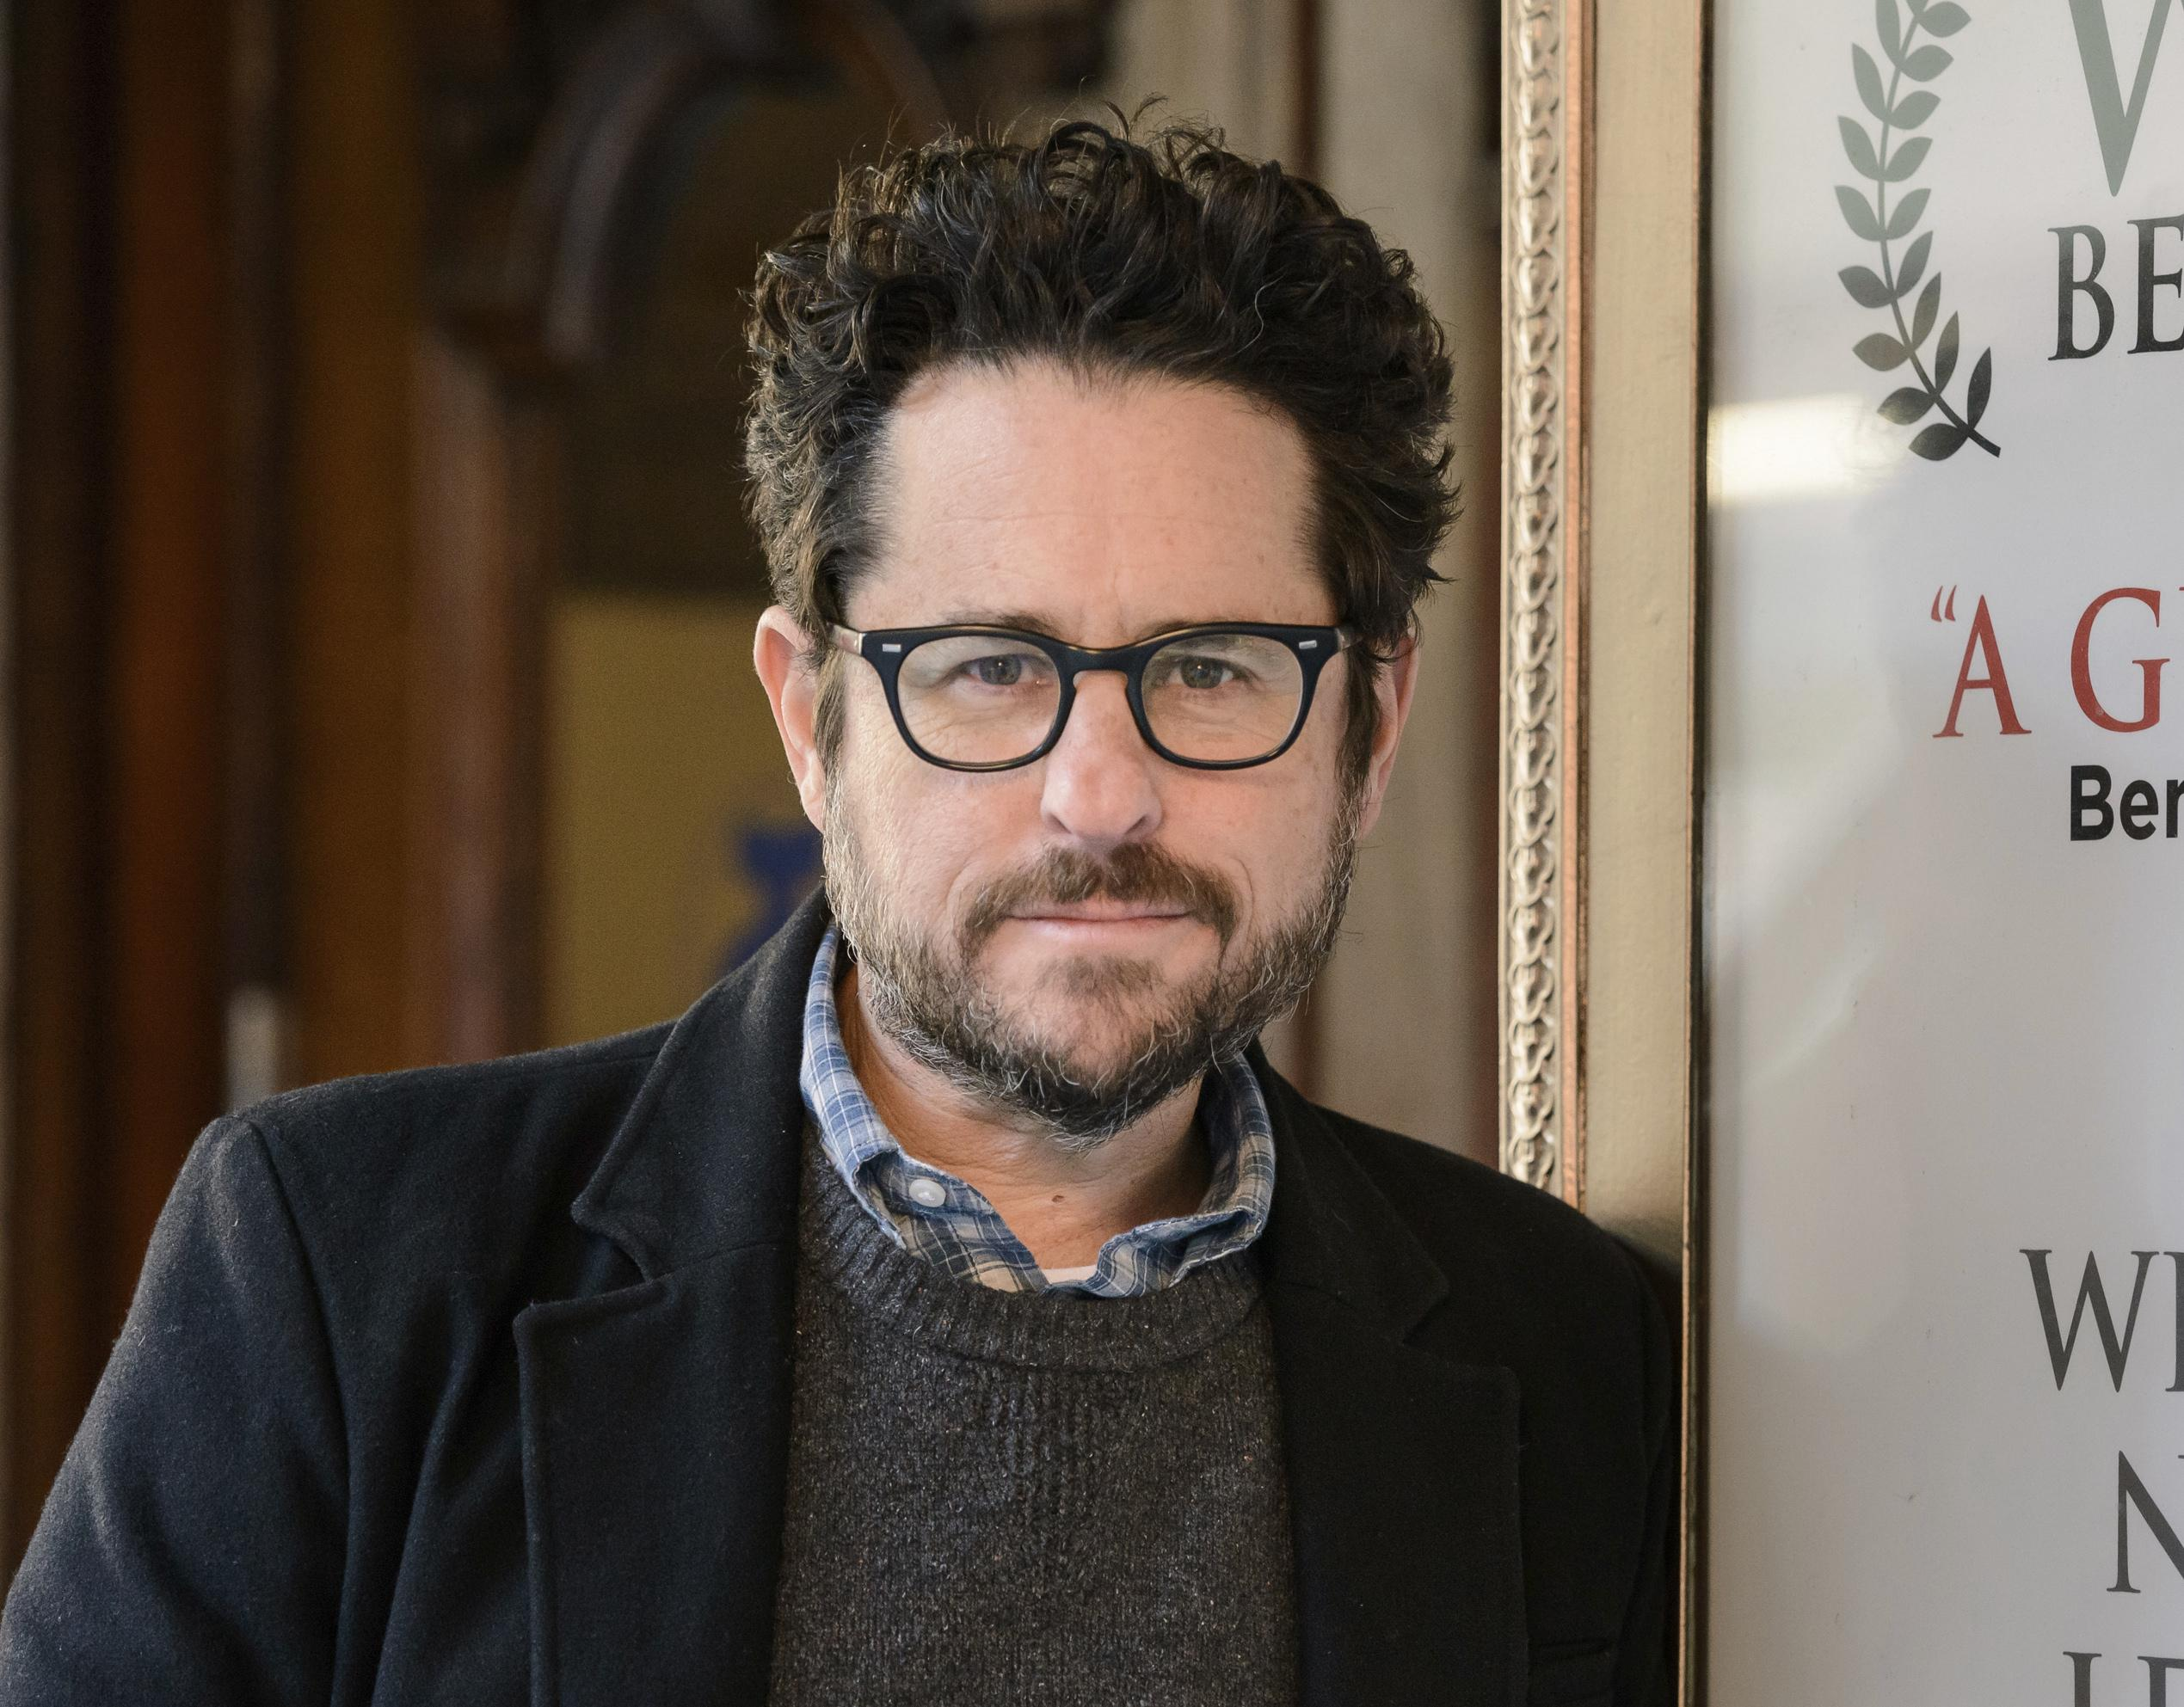 JJ Abrams to Write and Direct Star Wars: Episode IX